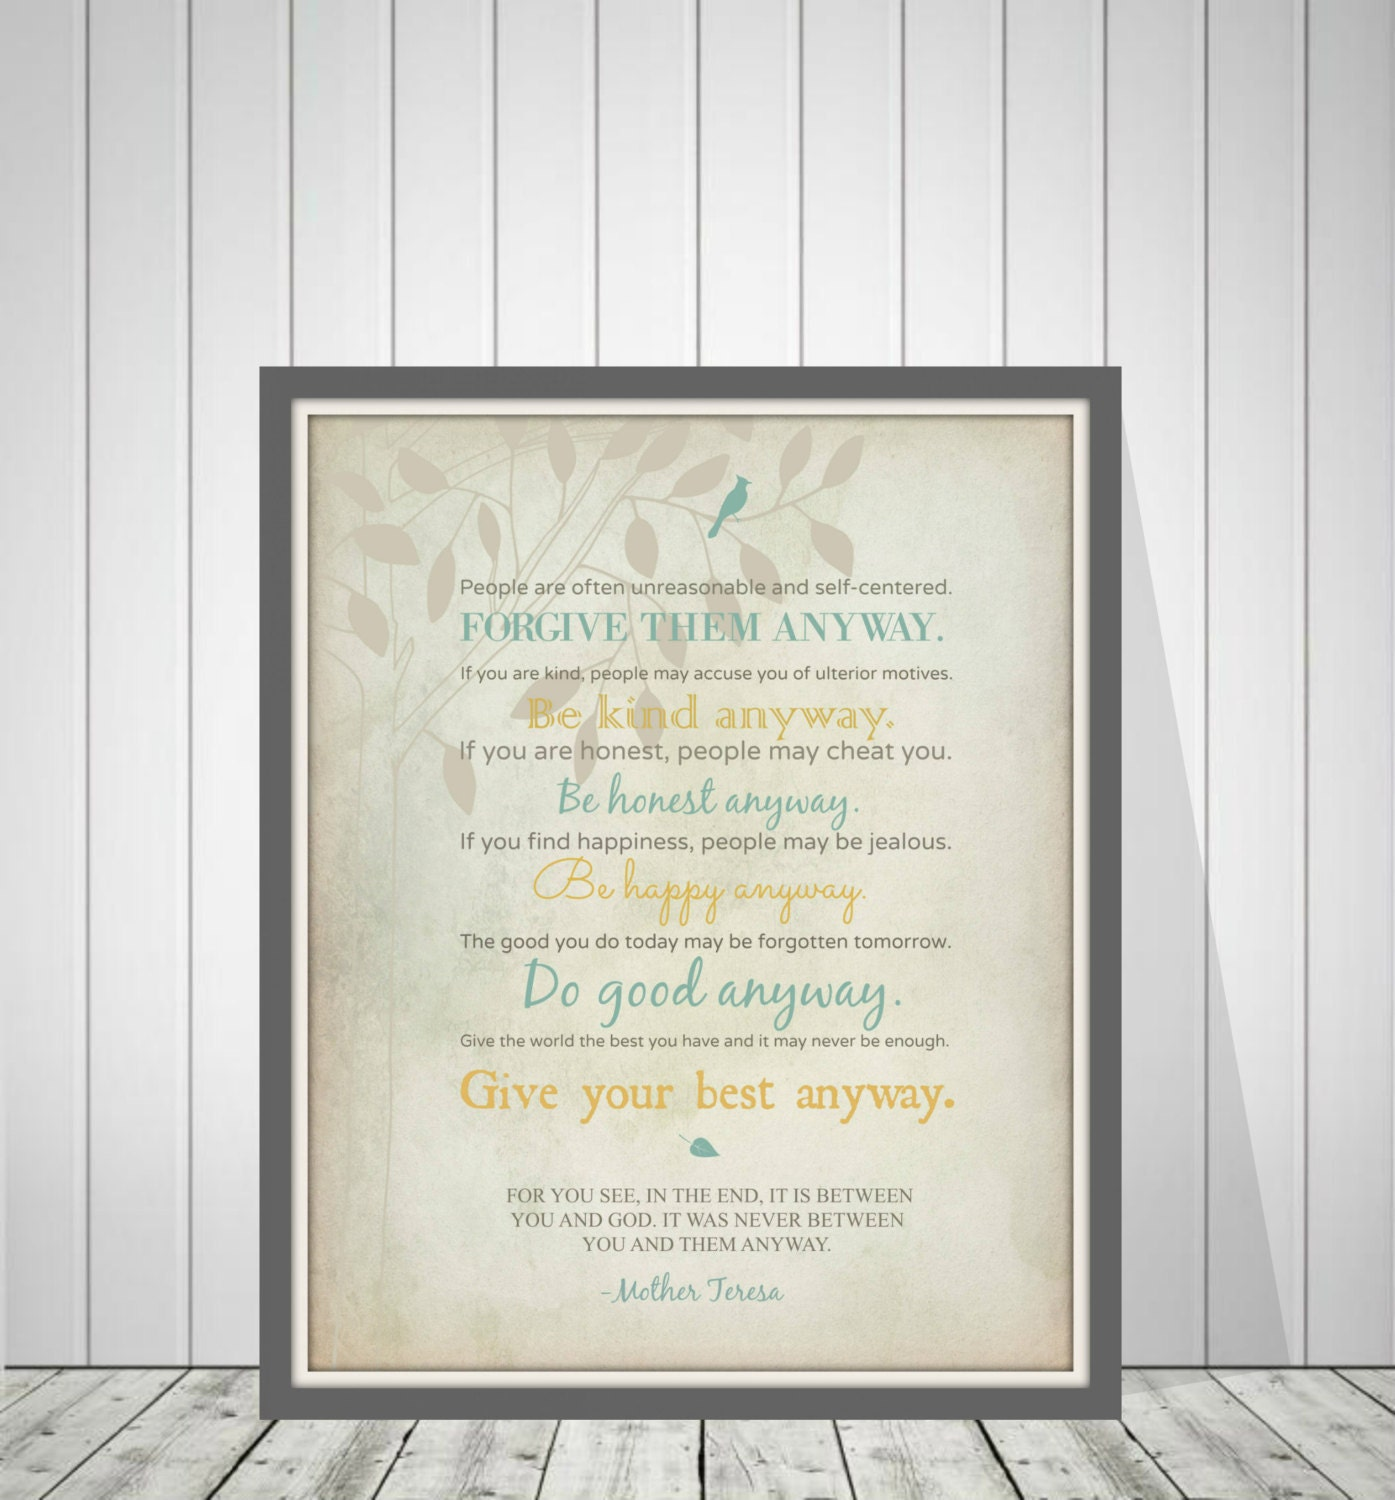 Mother Teresa Quotes Love Anyway Mother Teresa Quote Mother Teresa Do It Anyway Poem